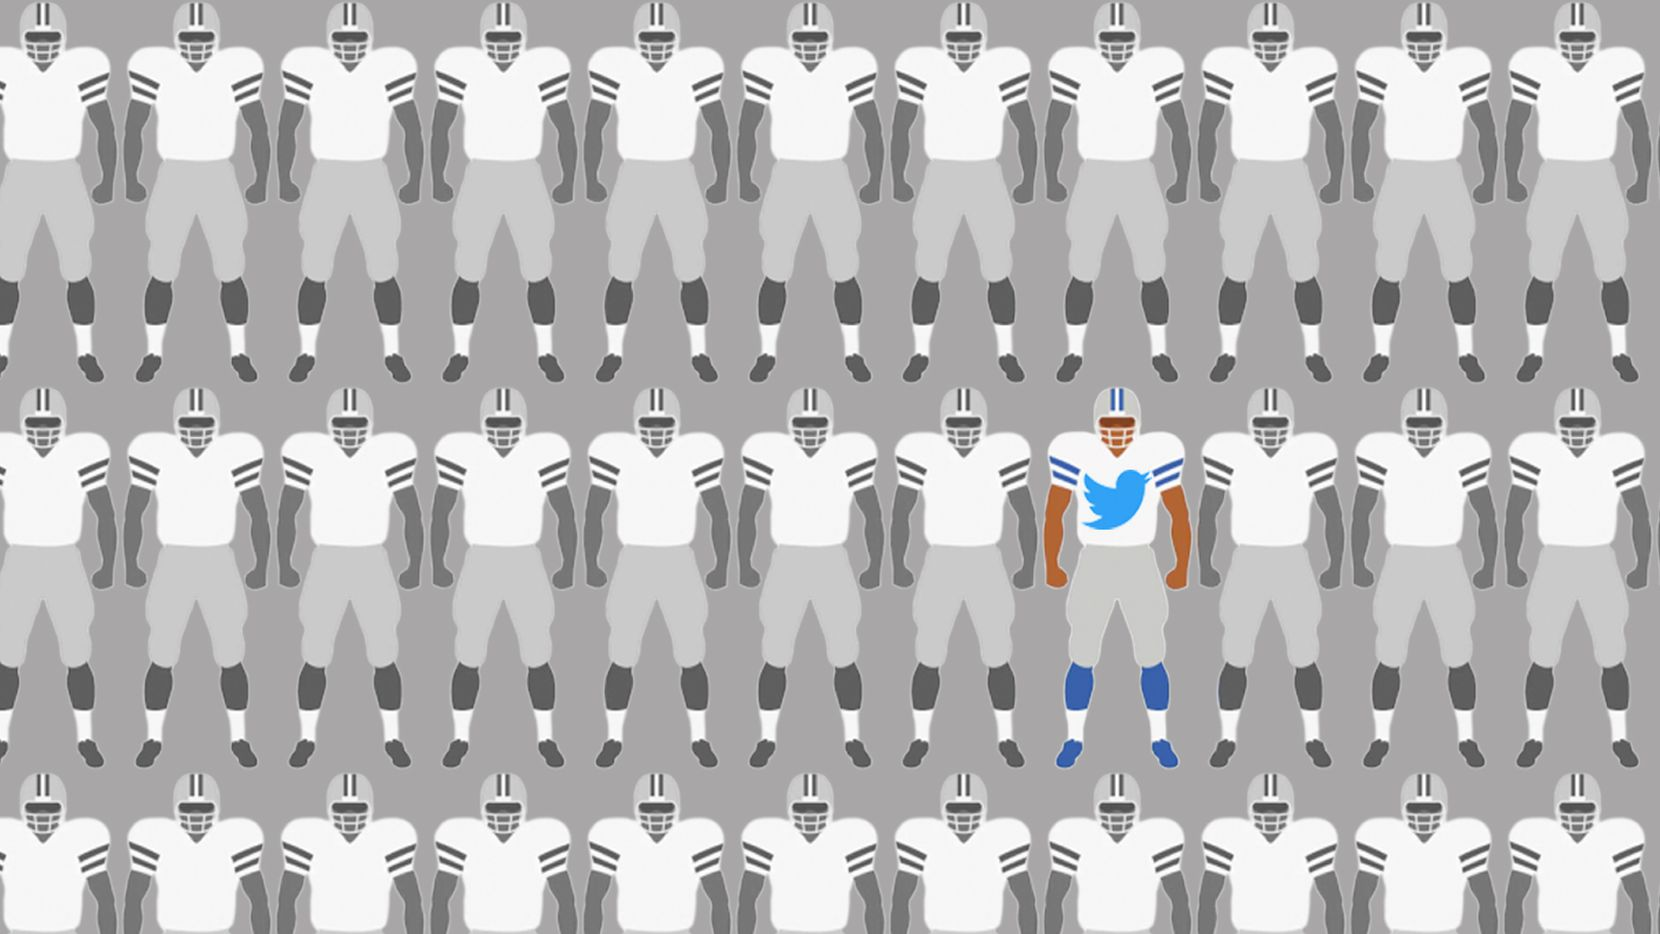 How can athletes stand out in a crowd of thousands? They're getting creative.